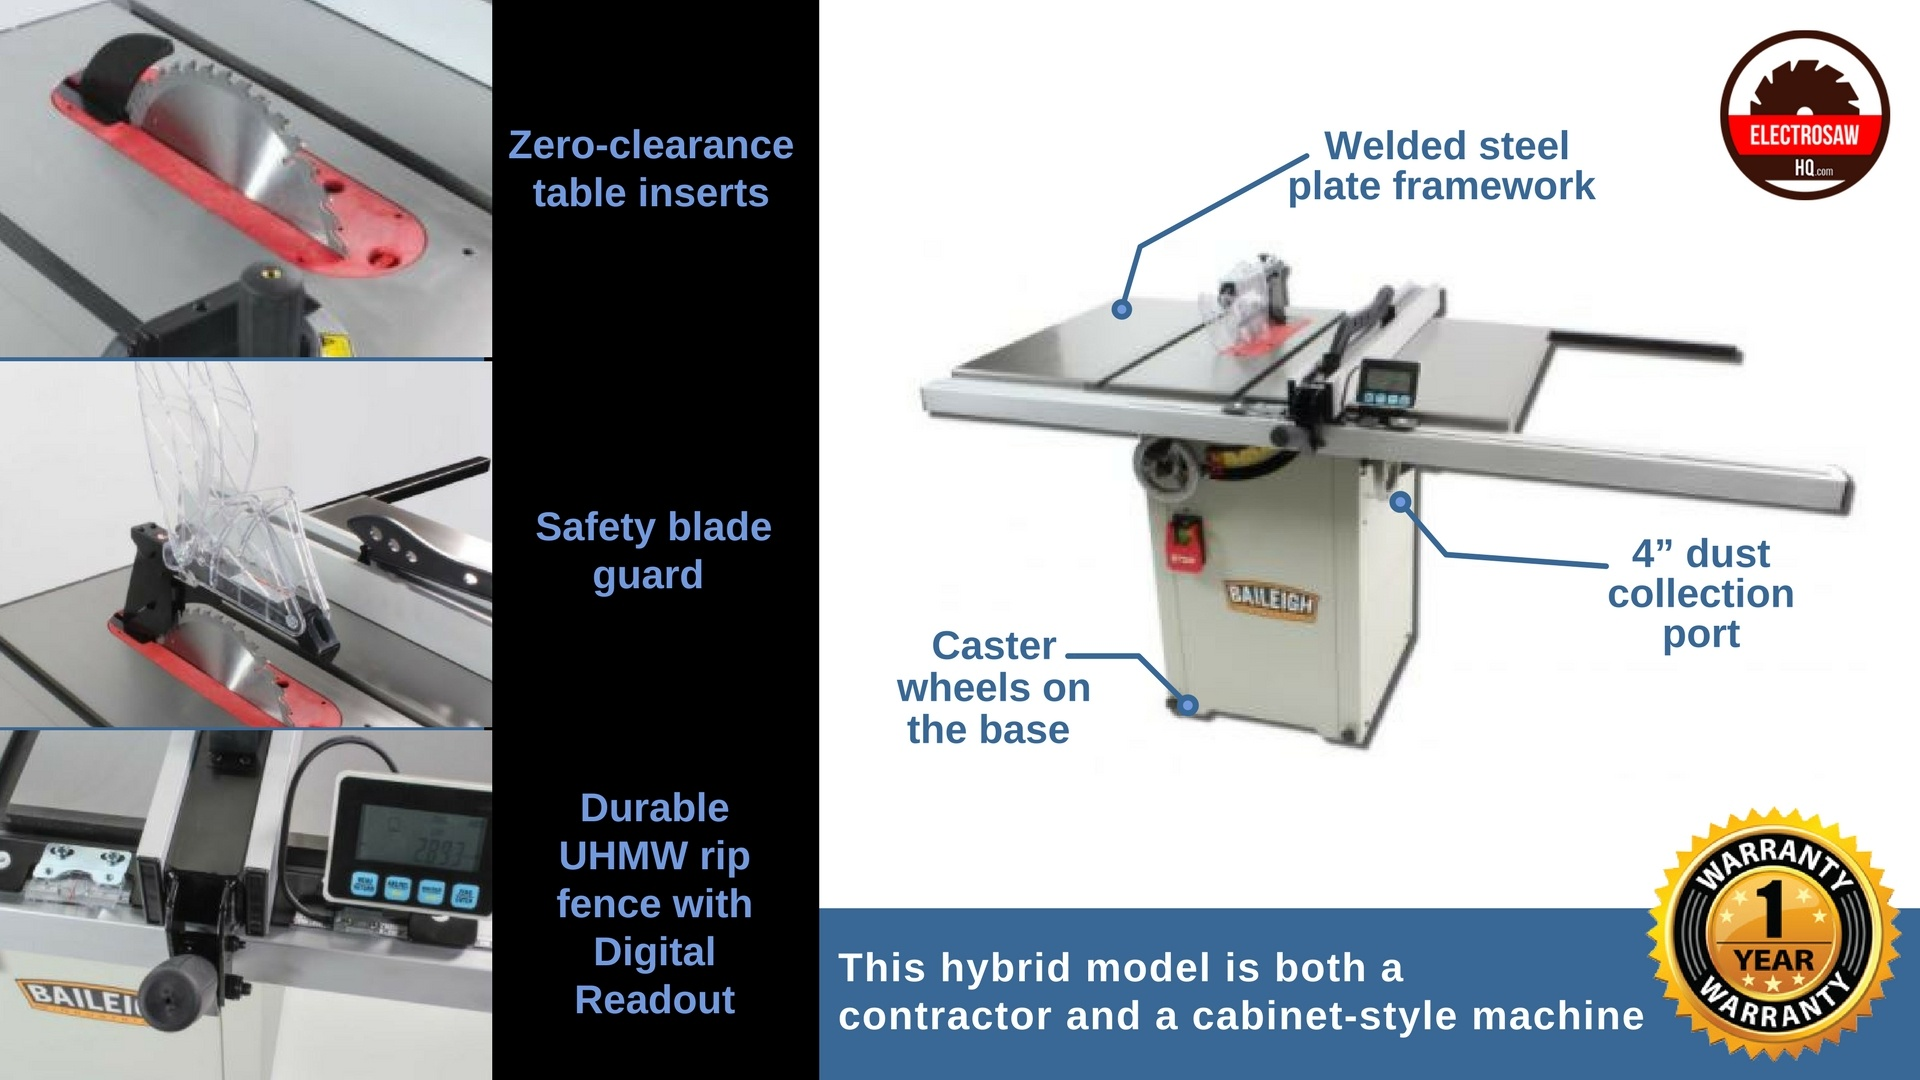 The Best Hybrid Table Saw Reviews For Woodworkers